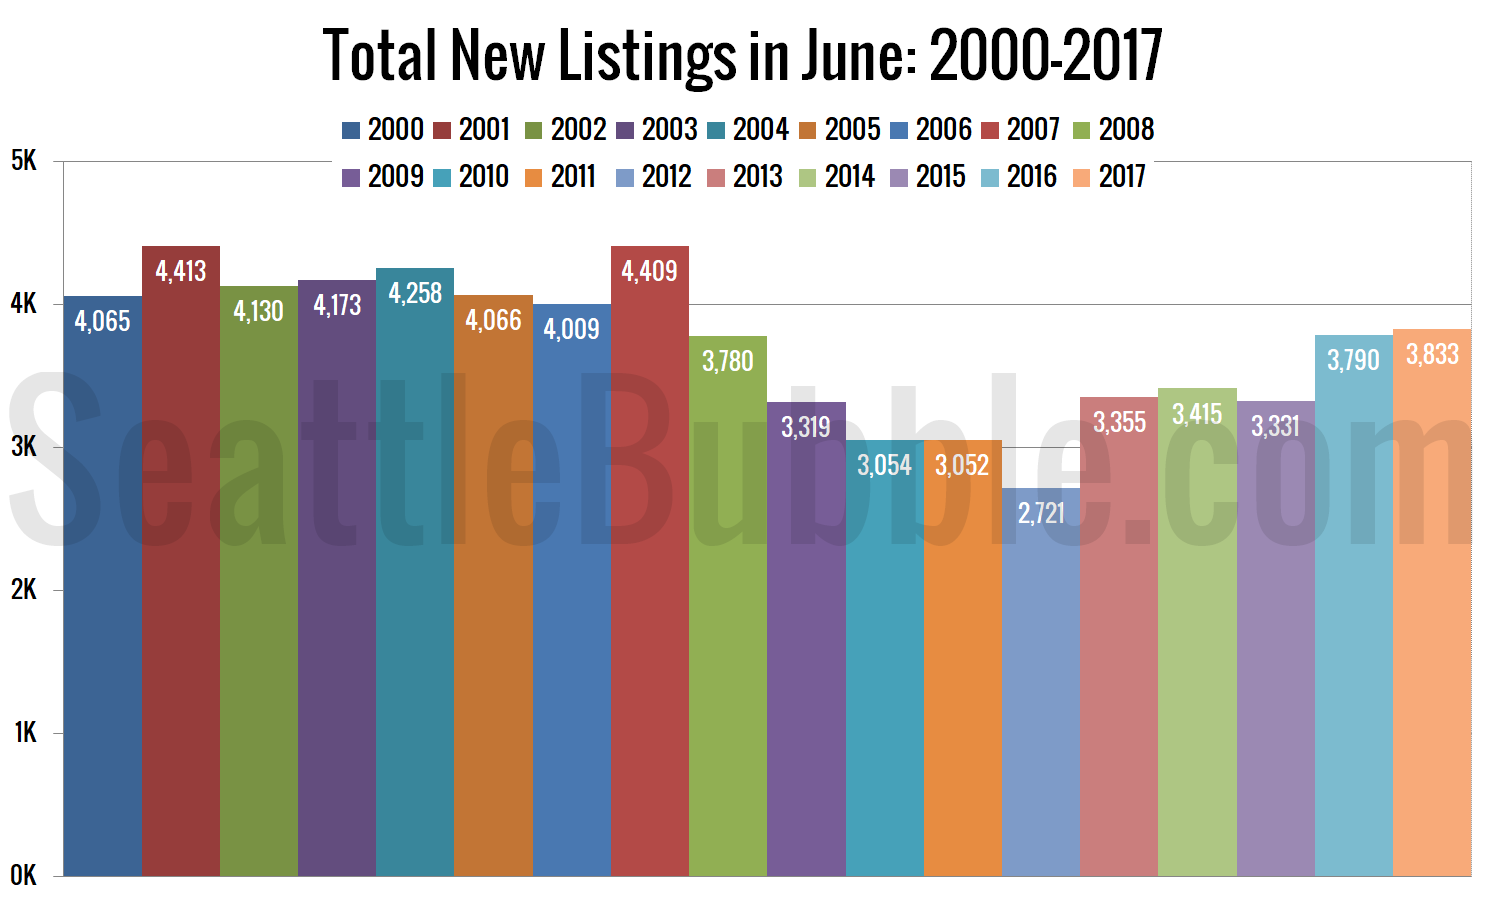 Total New Listings in June: 2000-2017